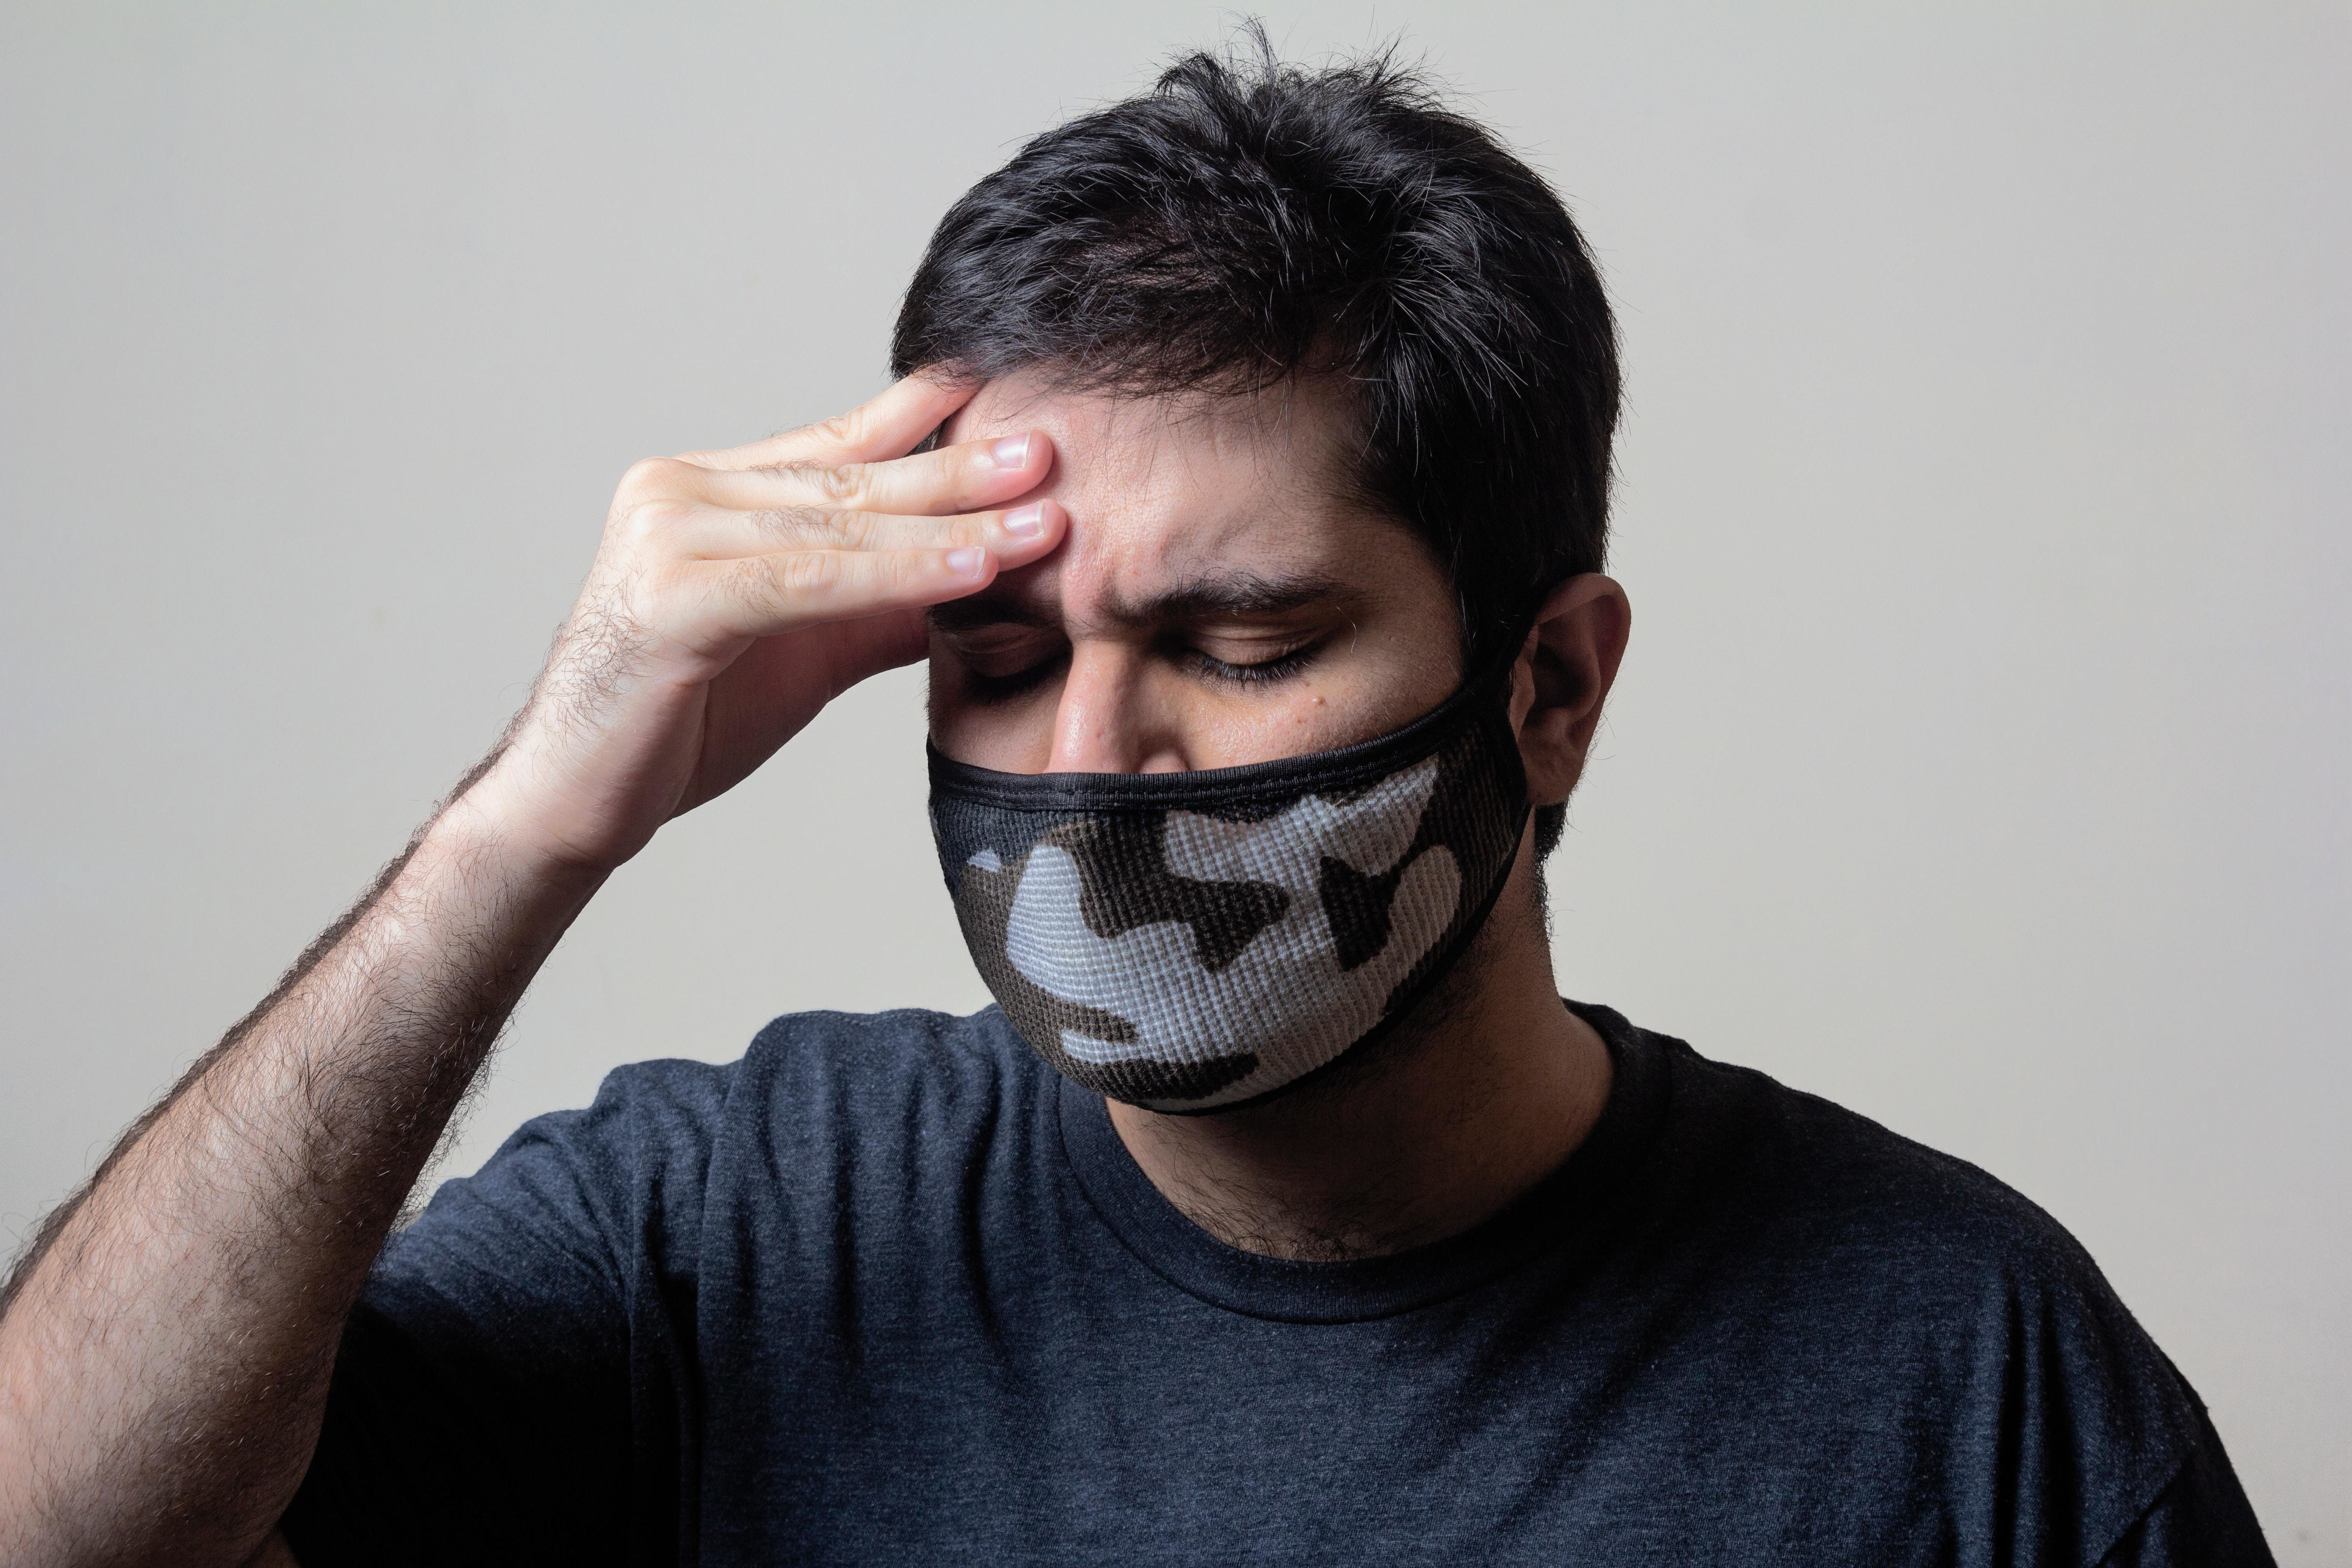 image of an anxious-looking man wearing a COVID-19 mask